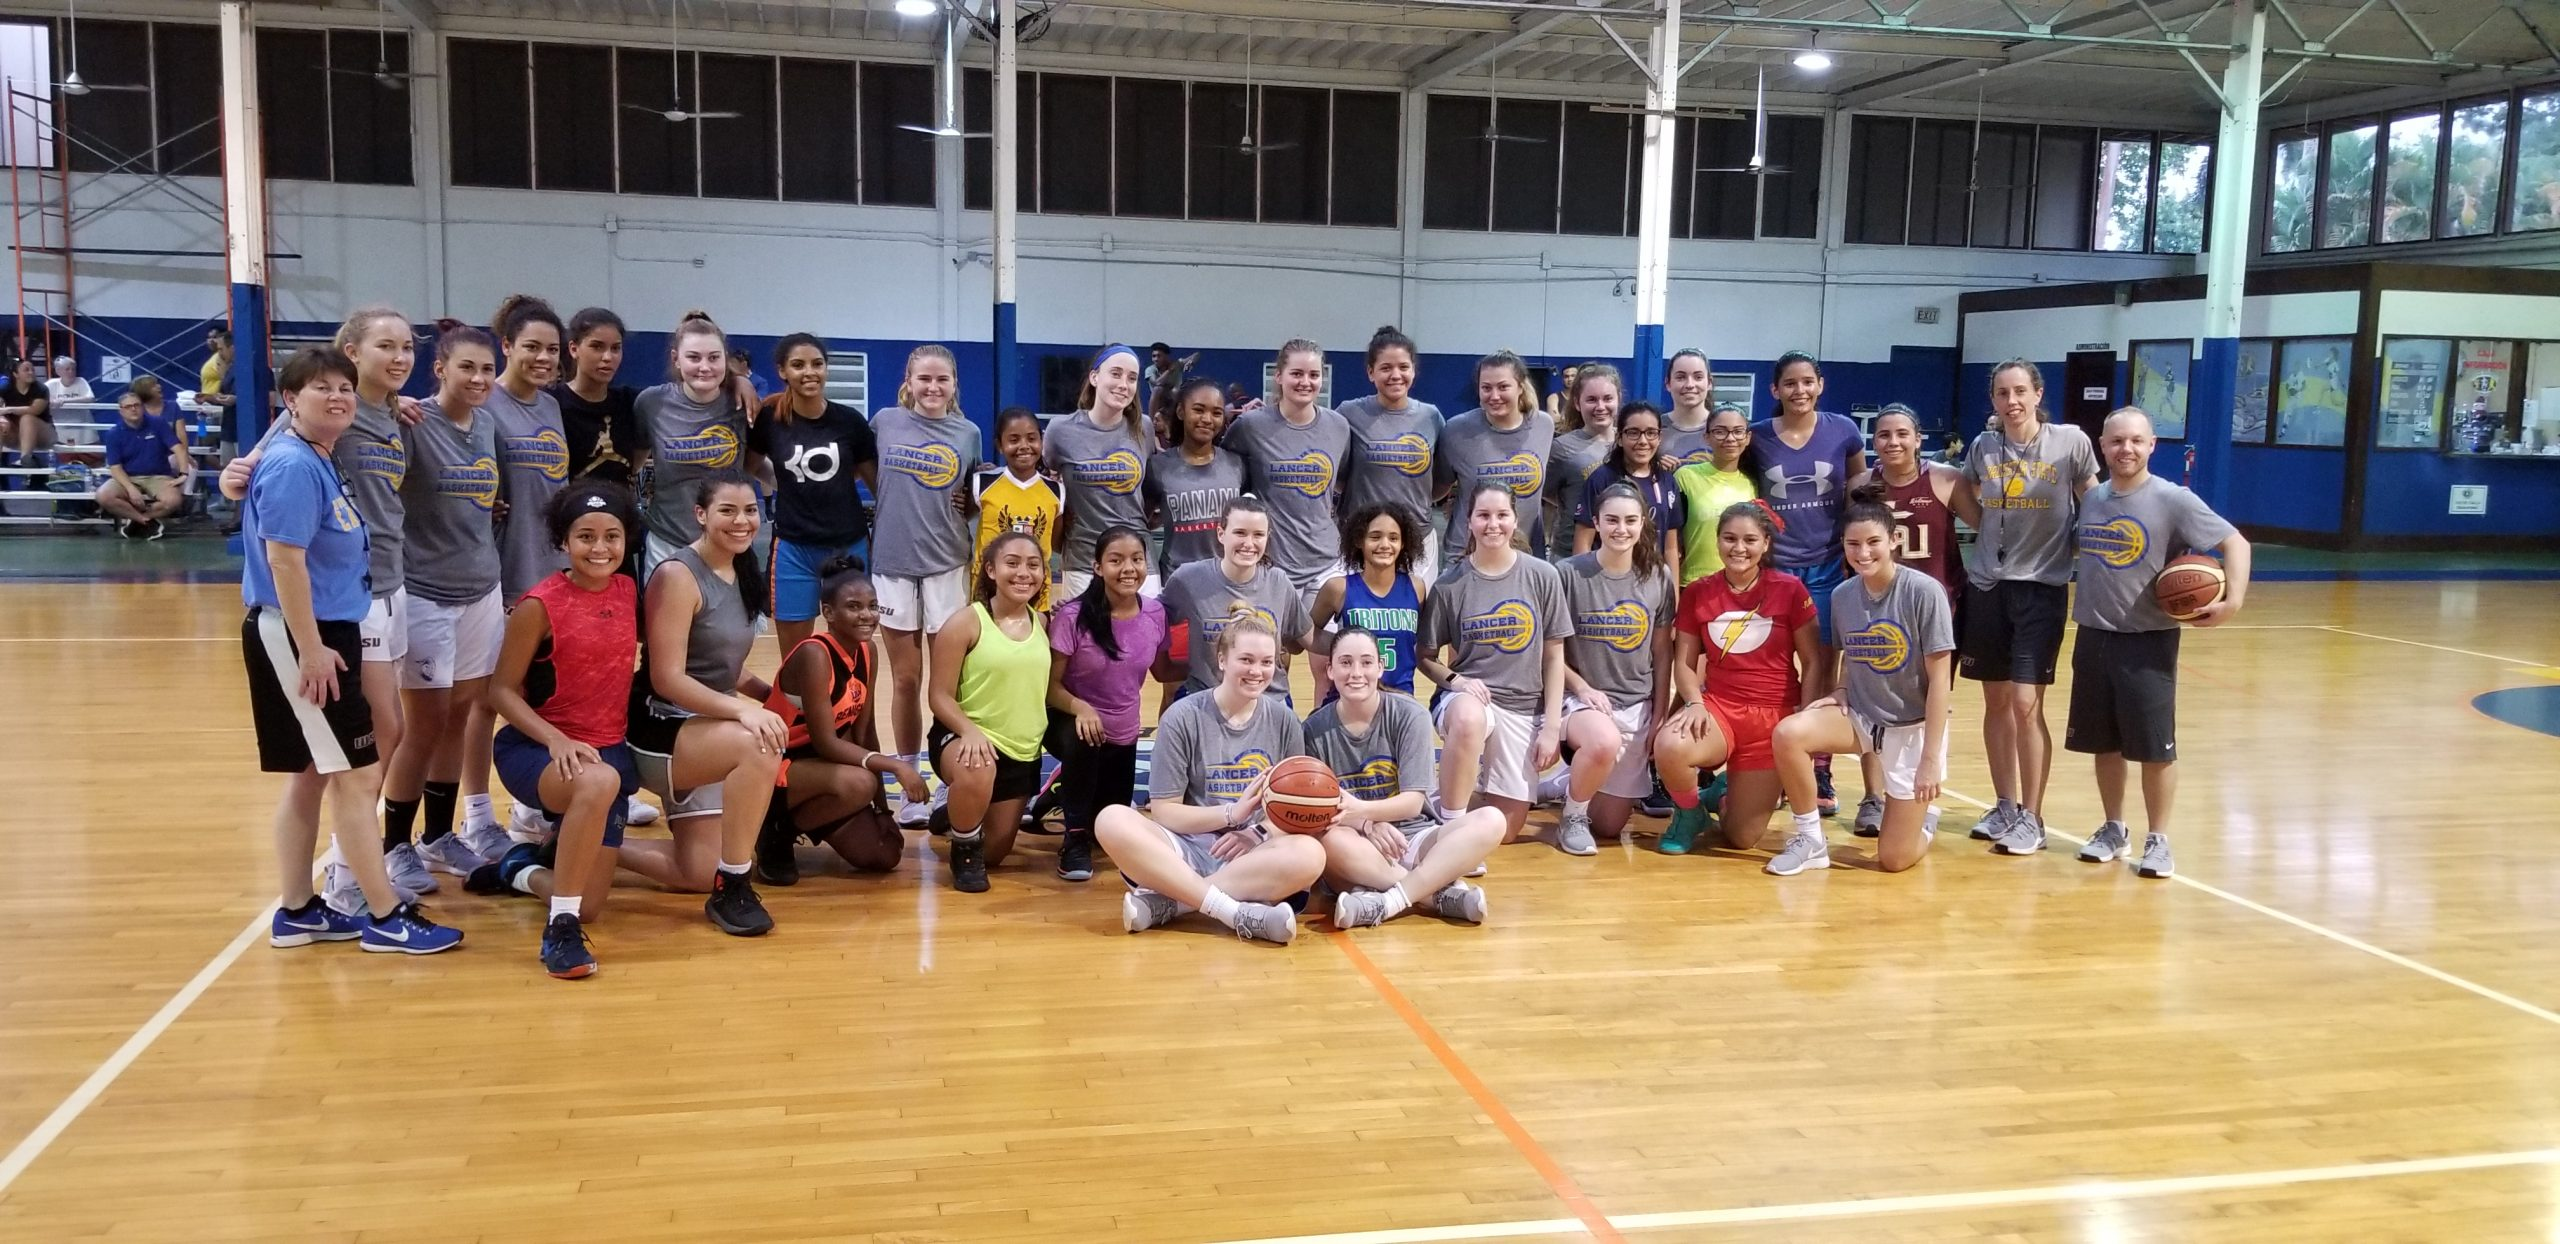 Women's Basketball Team Enjoys Competition and Service in Panama